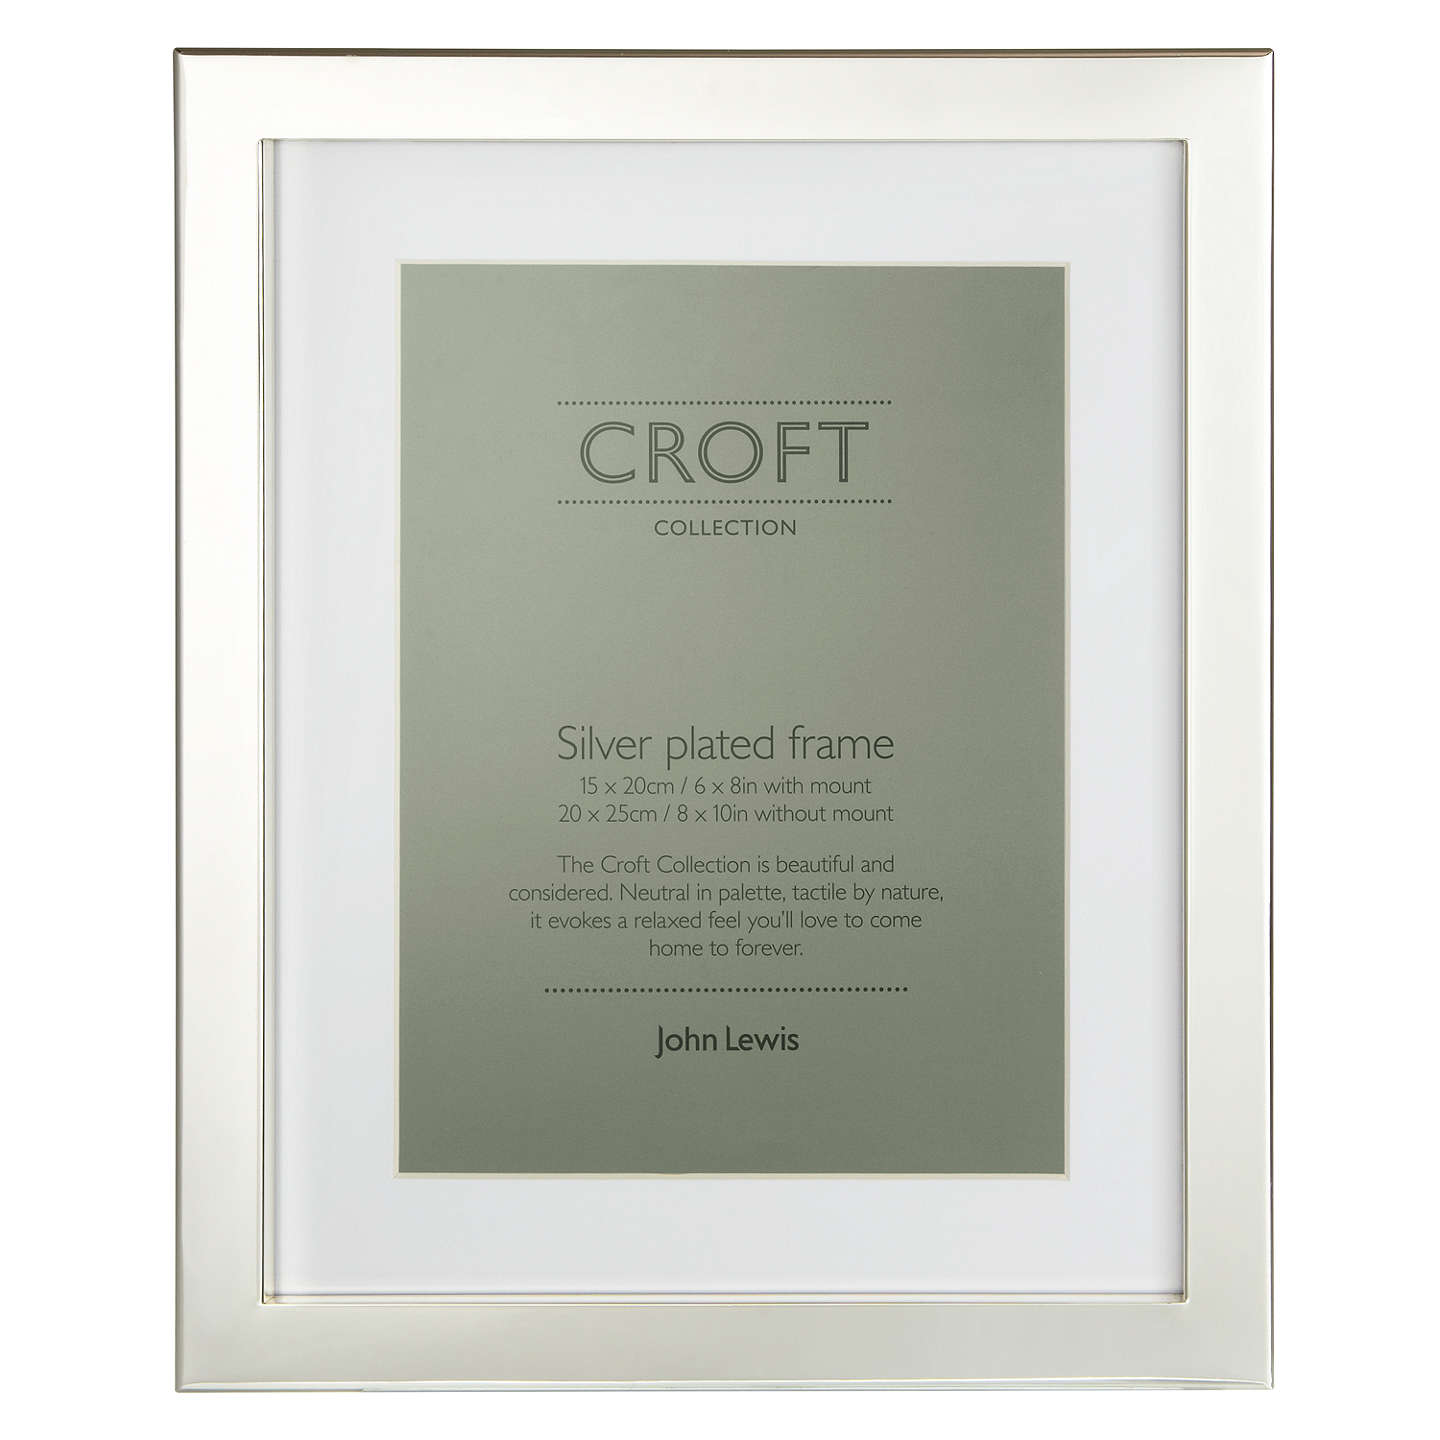 Croft Collection Silver Plated Box Photo Frame, 6 x 8\